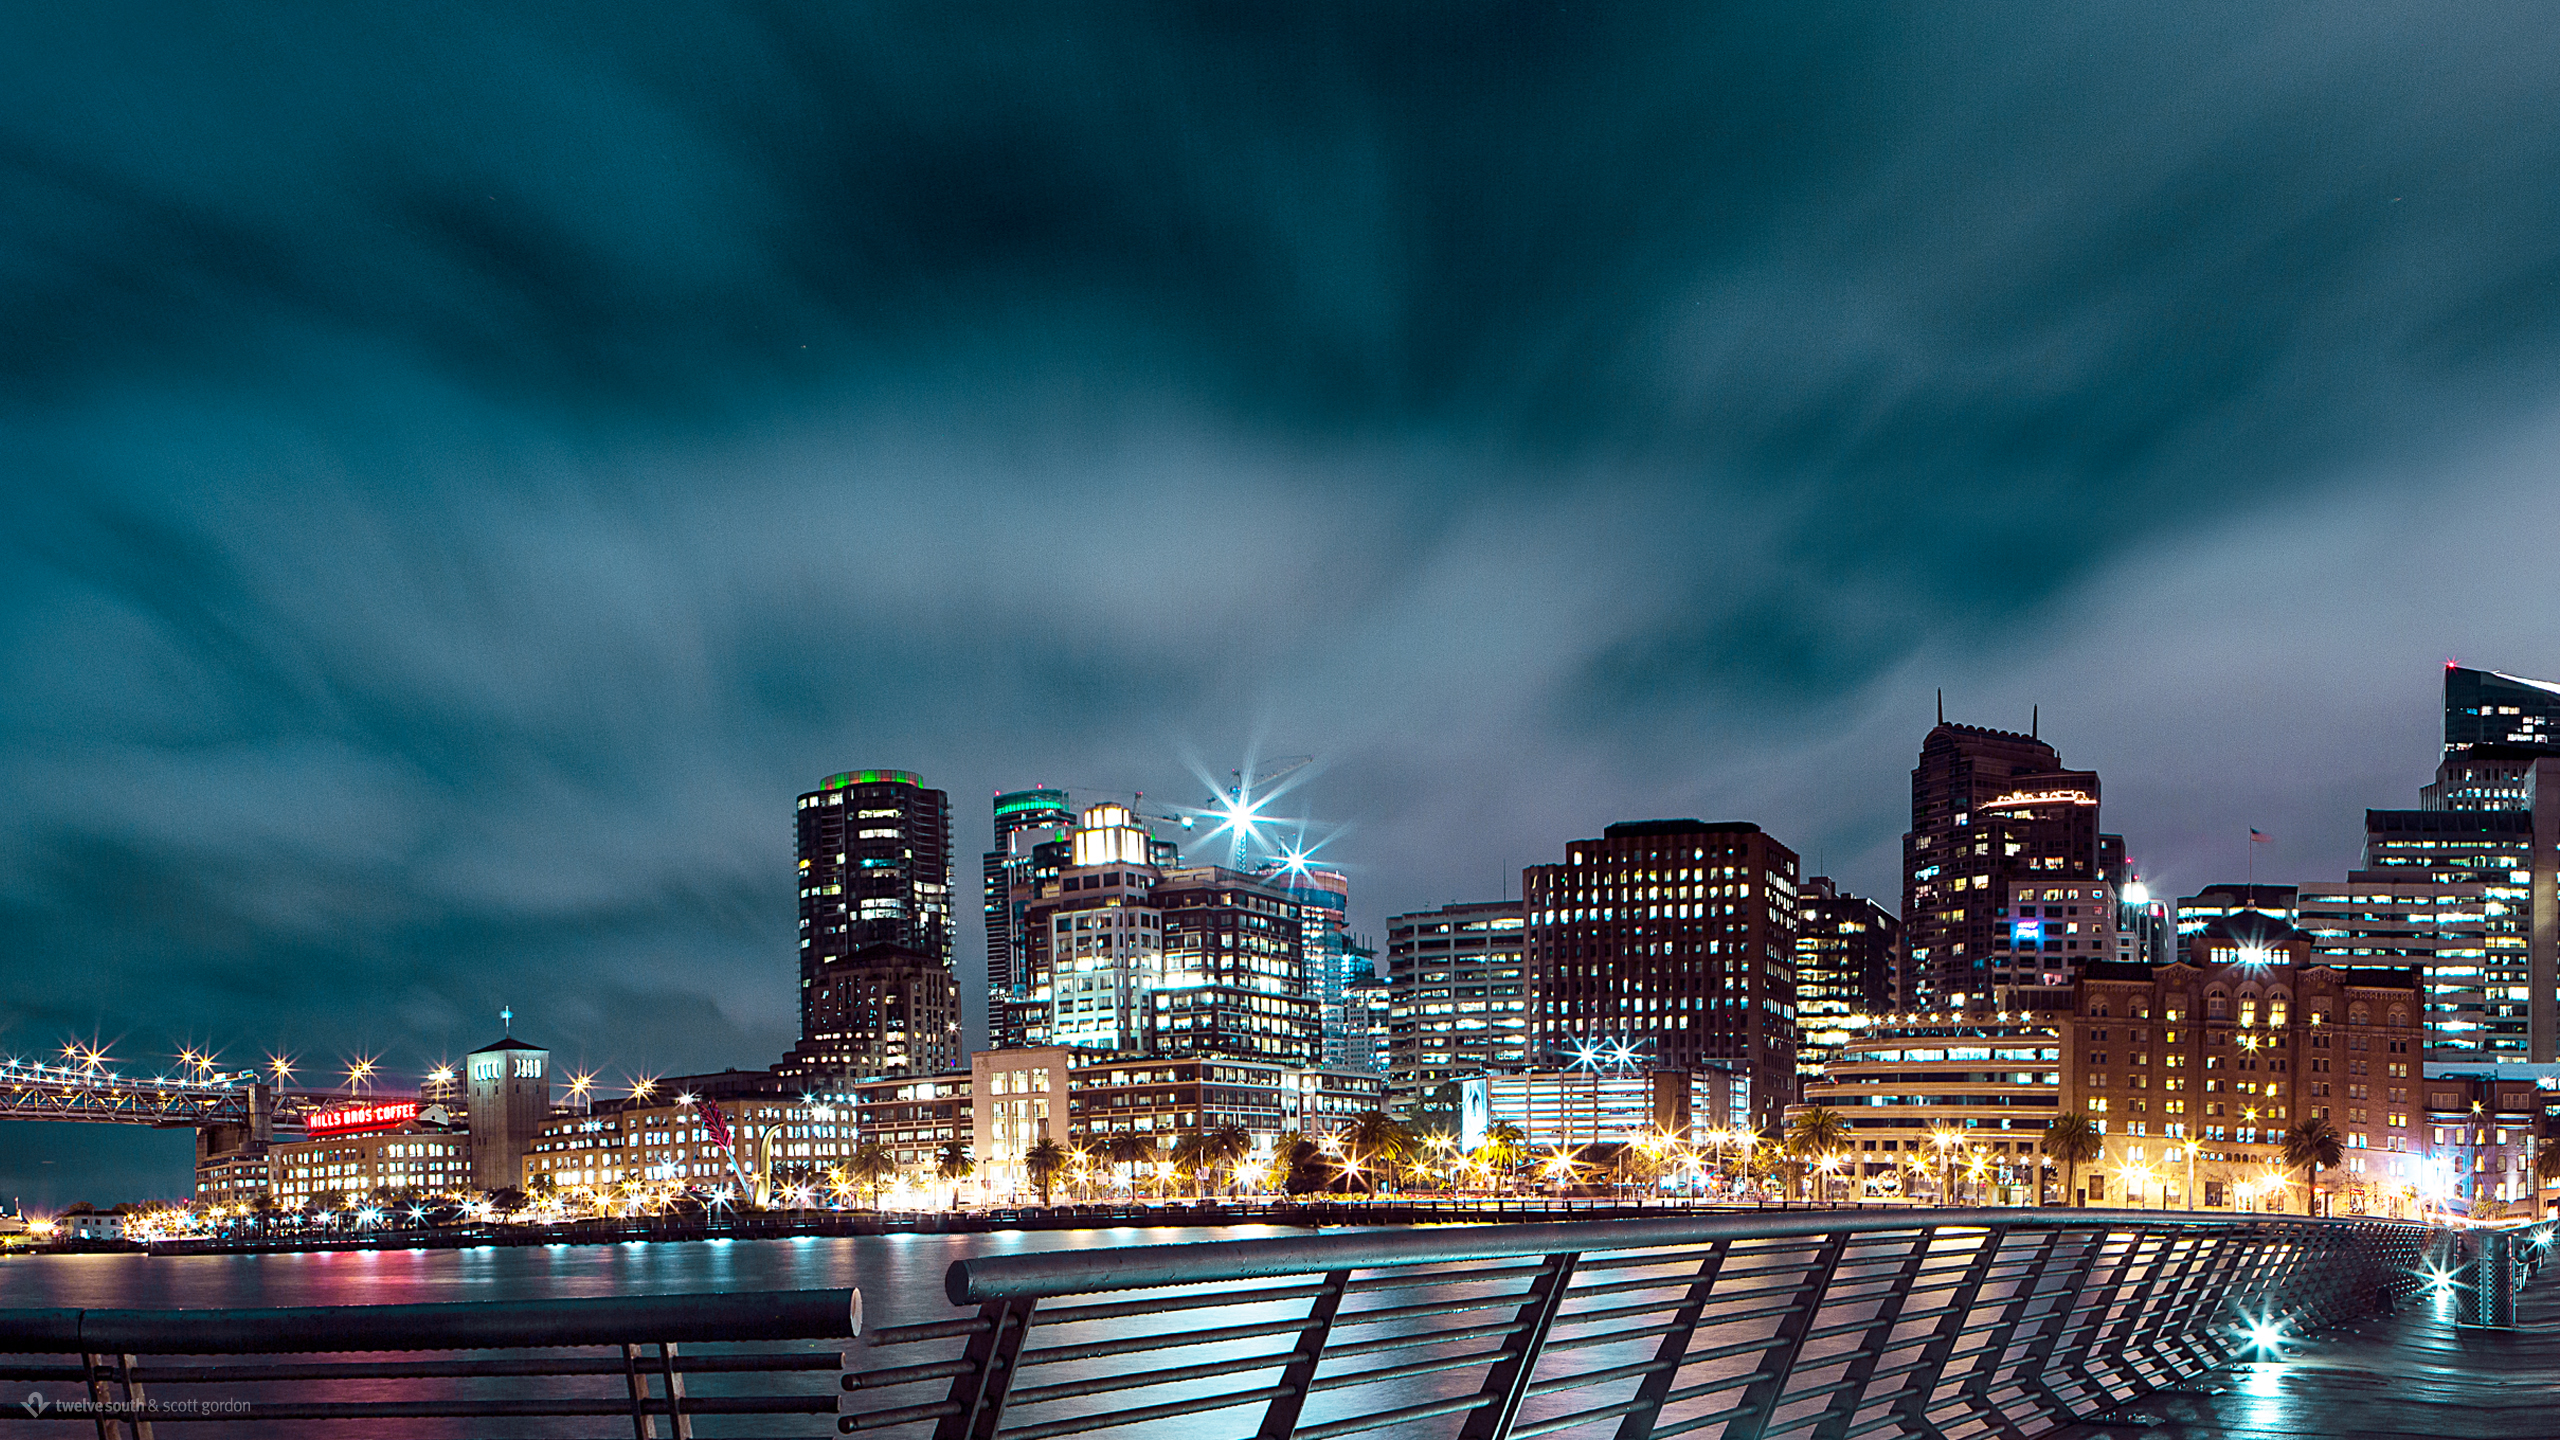 San Francisco Nightscape Wallpapers HD Wallpapers 2560x1440